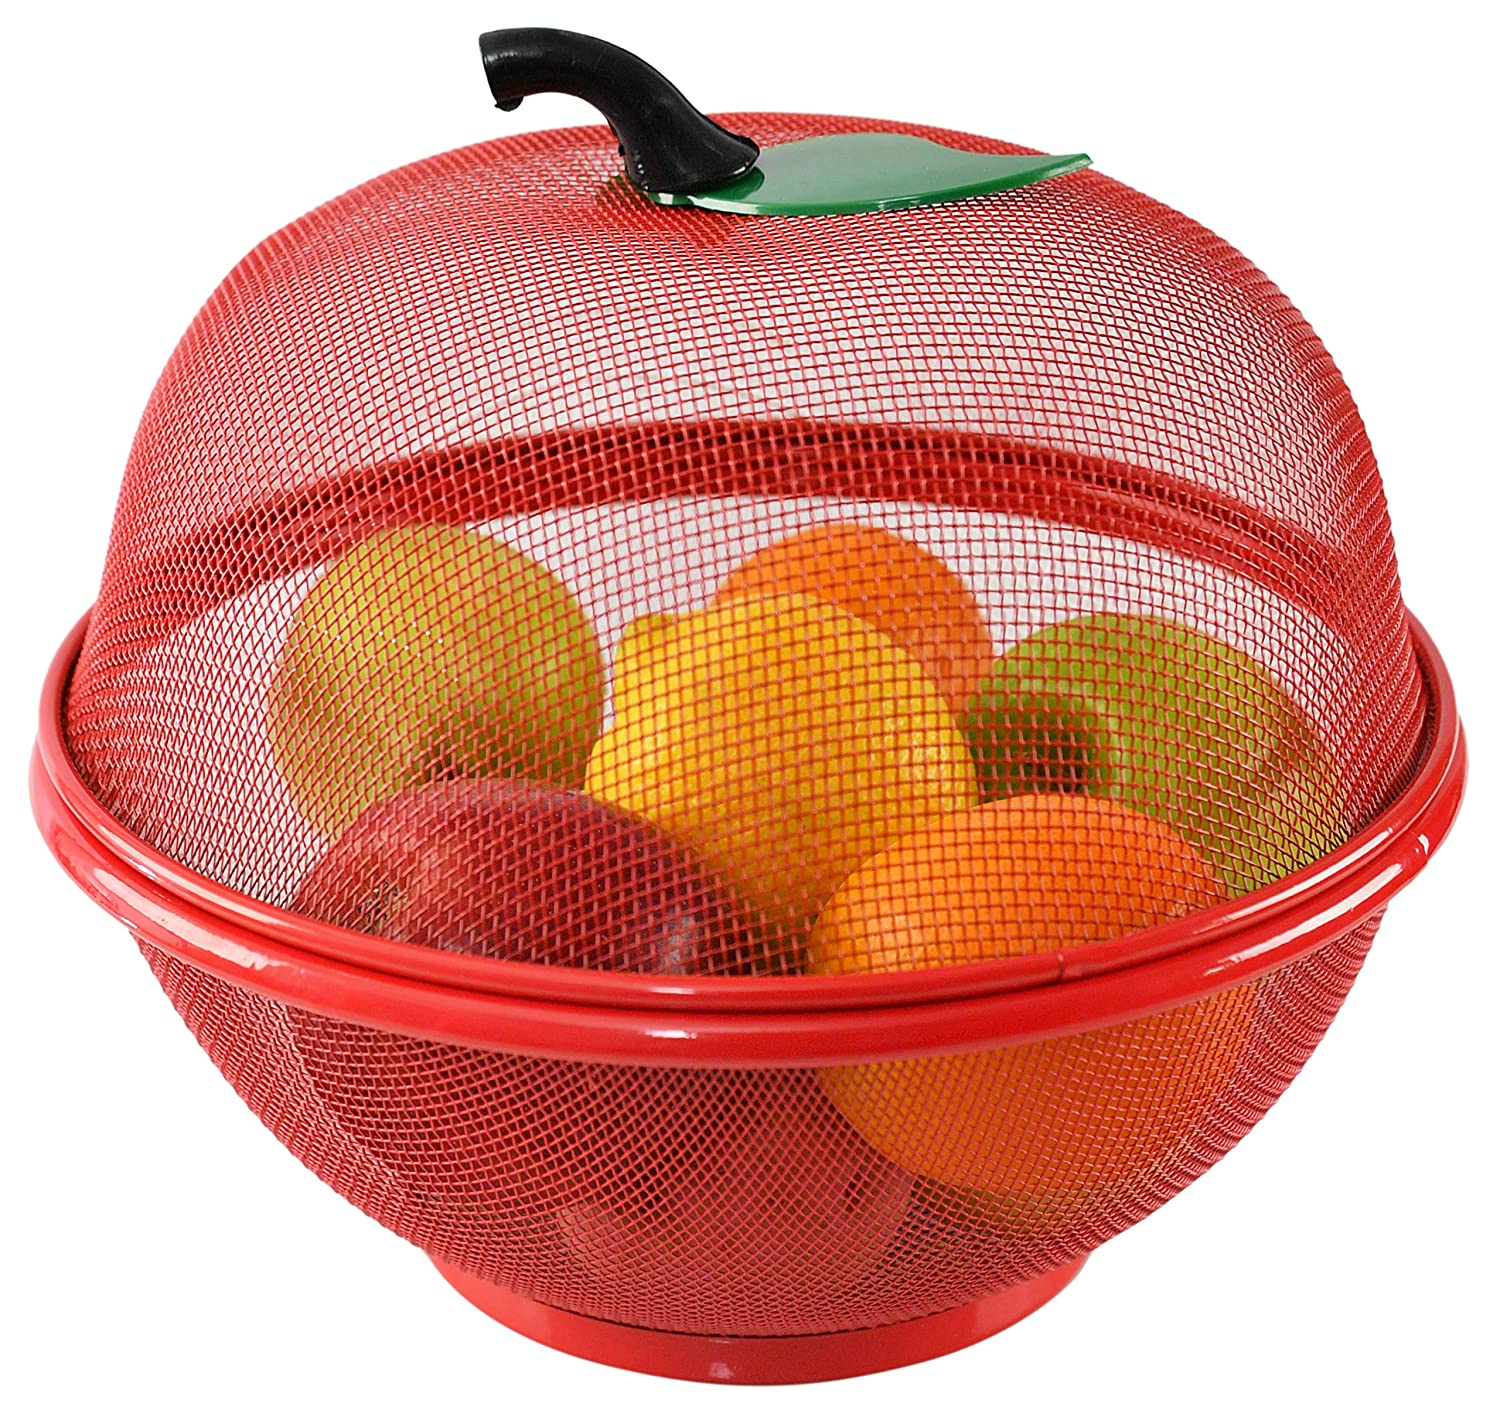 Buy Home X Apple Shaped Fruit Basket Fun Fruit Bowl Decorative Kitchen Decor And Storage Online At Low Prices In India Amazon In